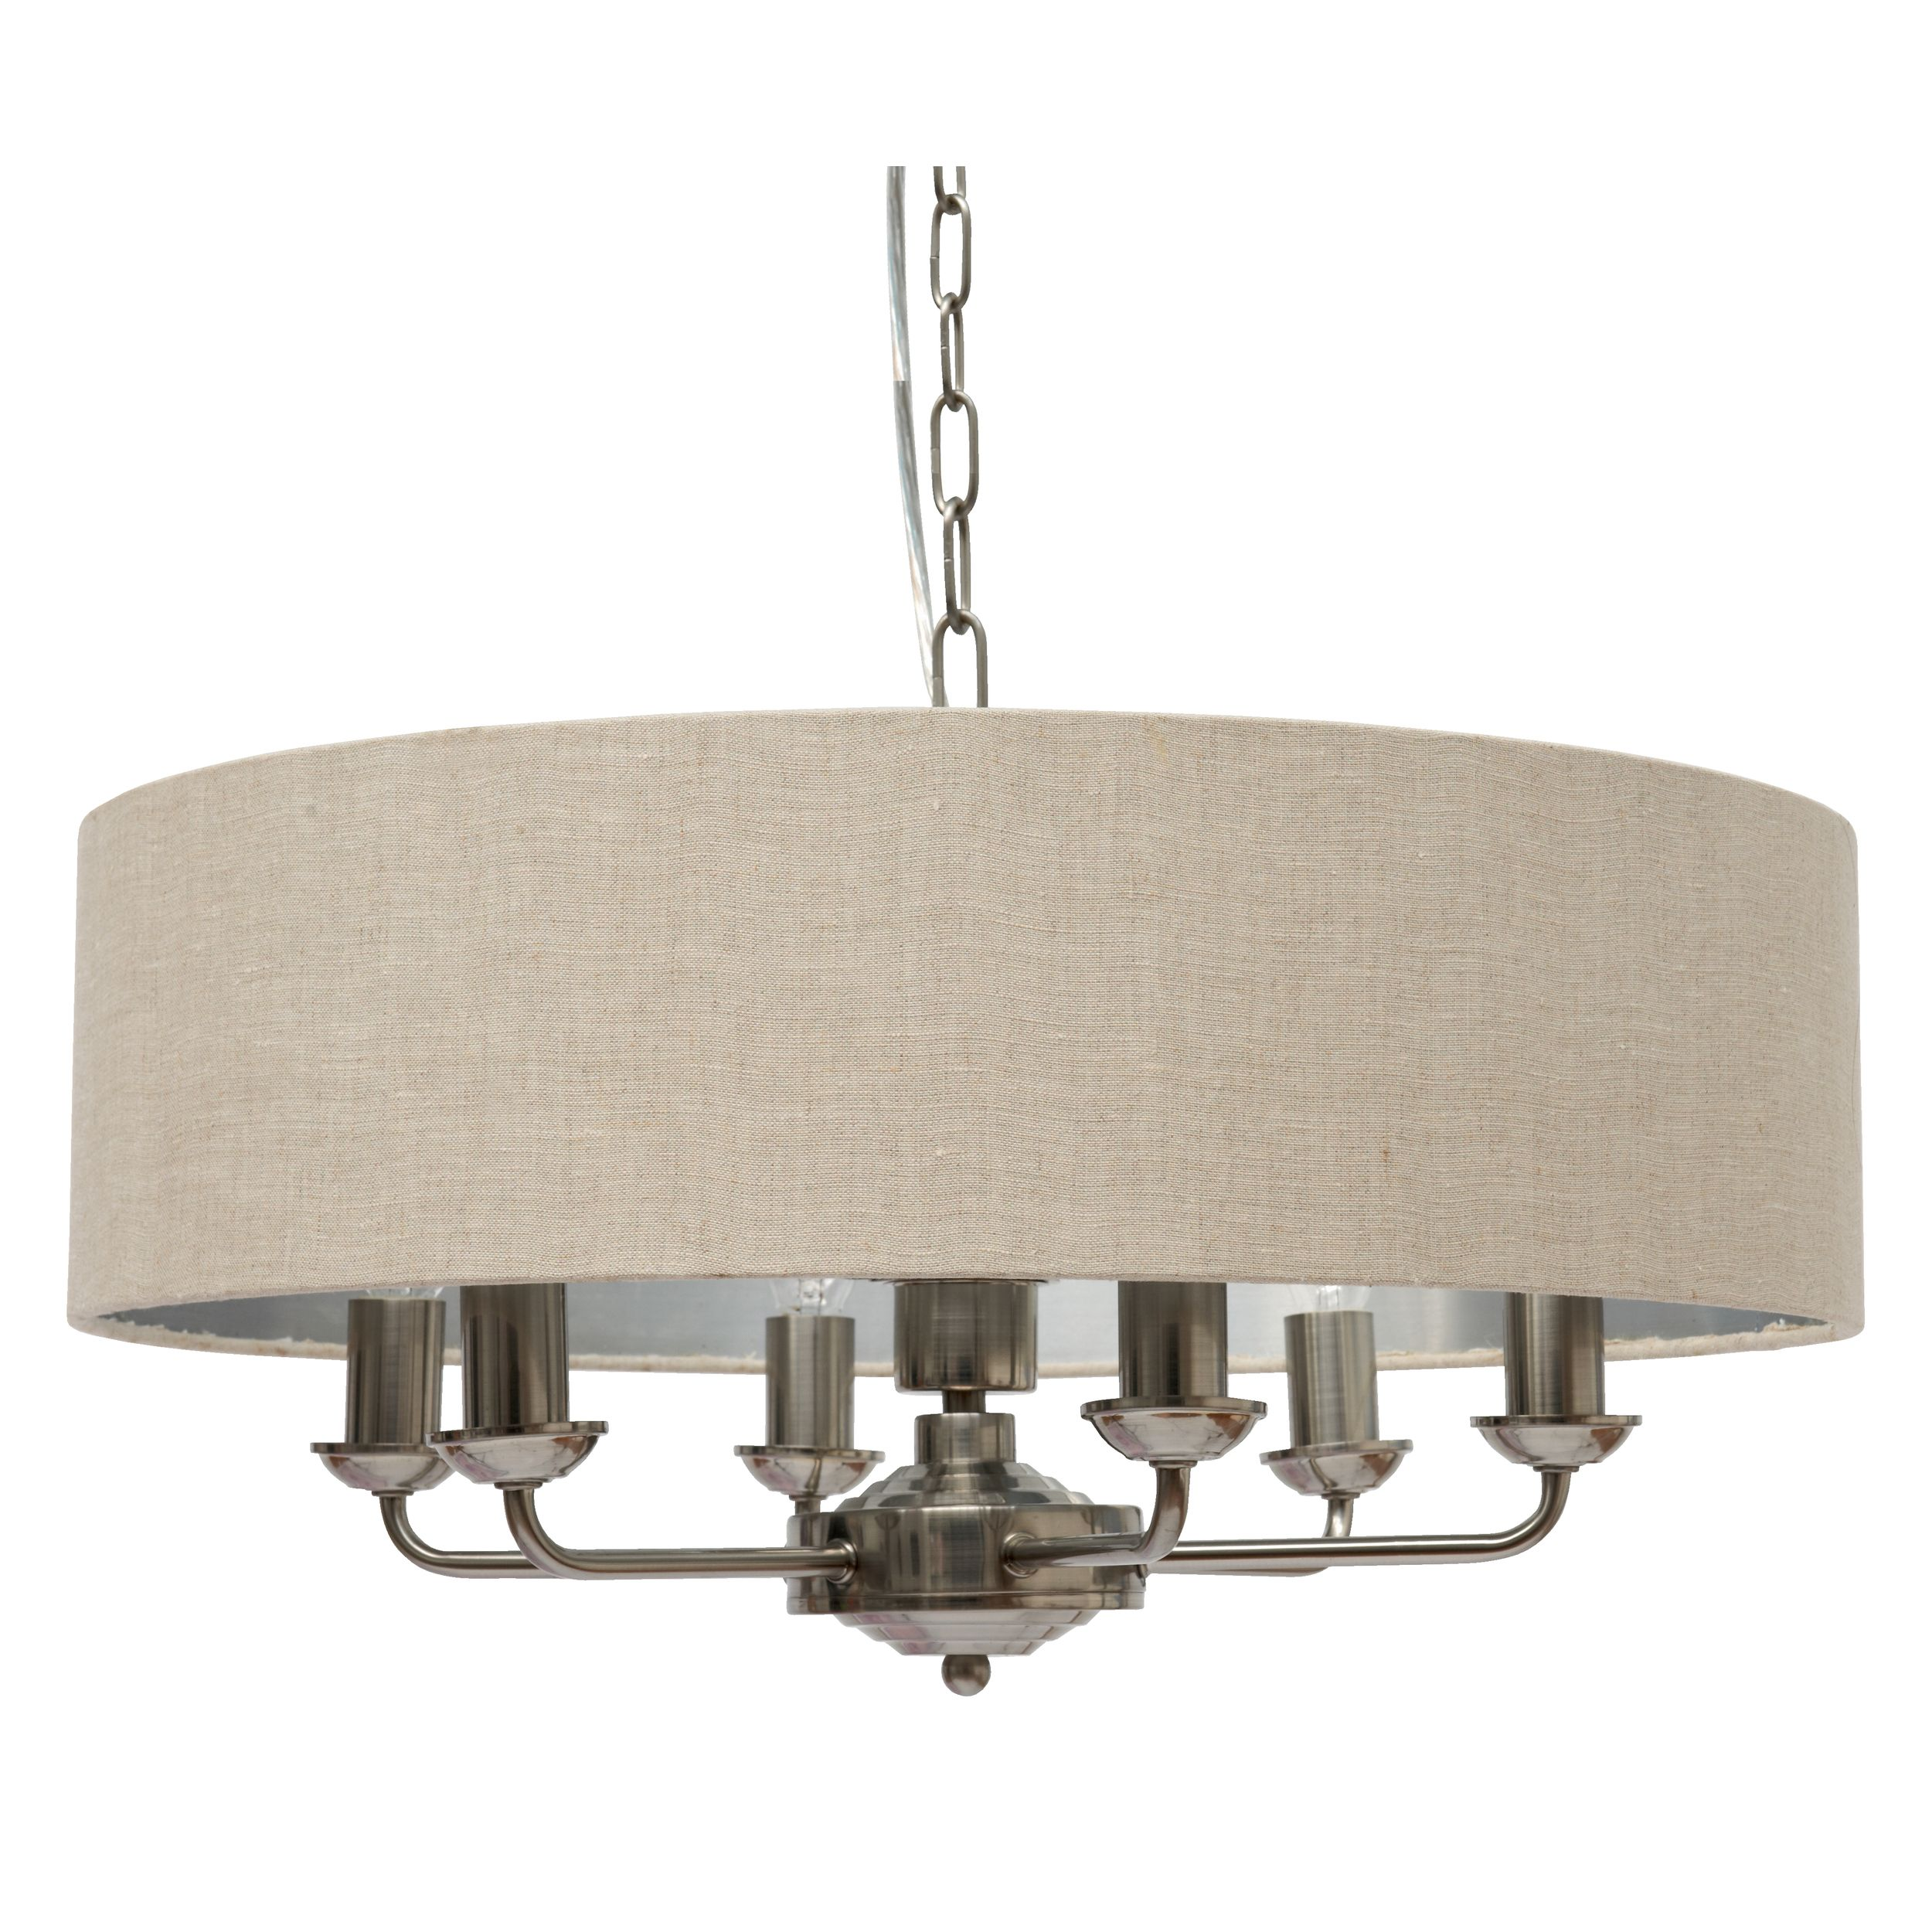 Laura Ashley Lighting | Lighting Ideas